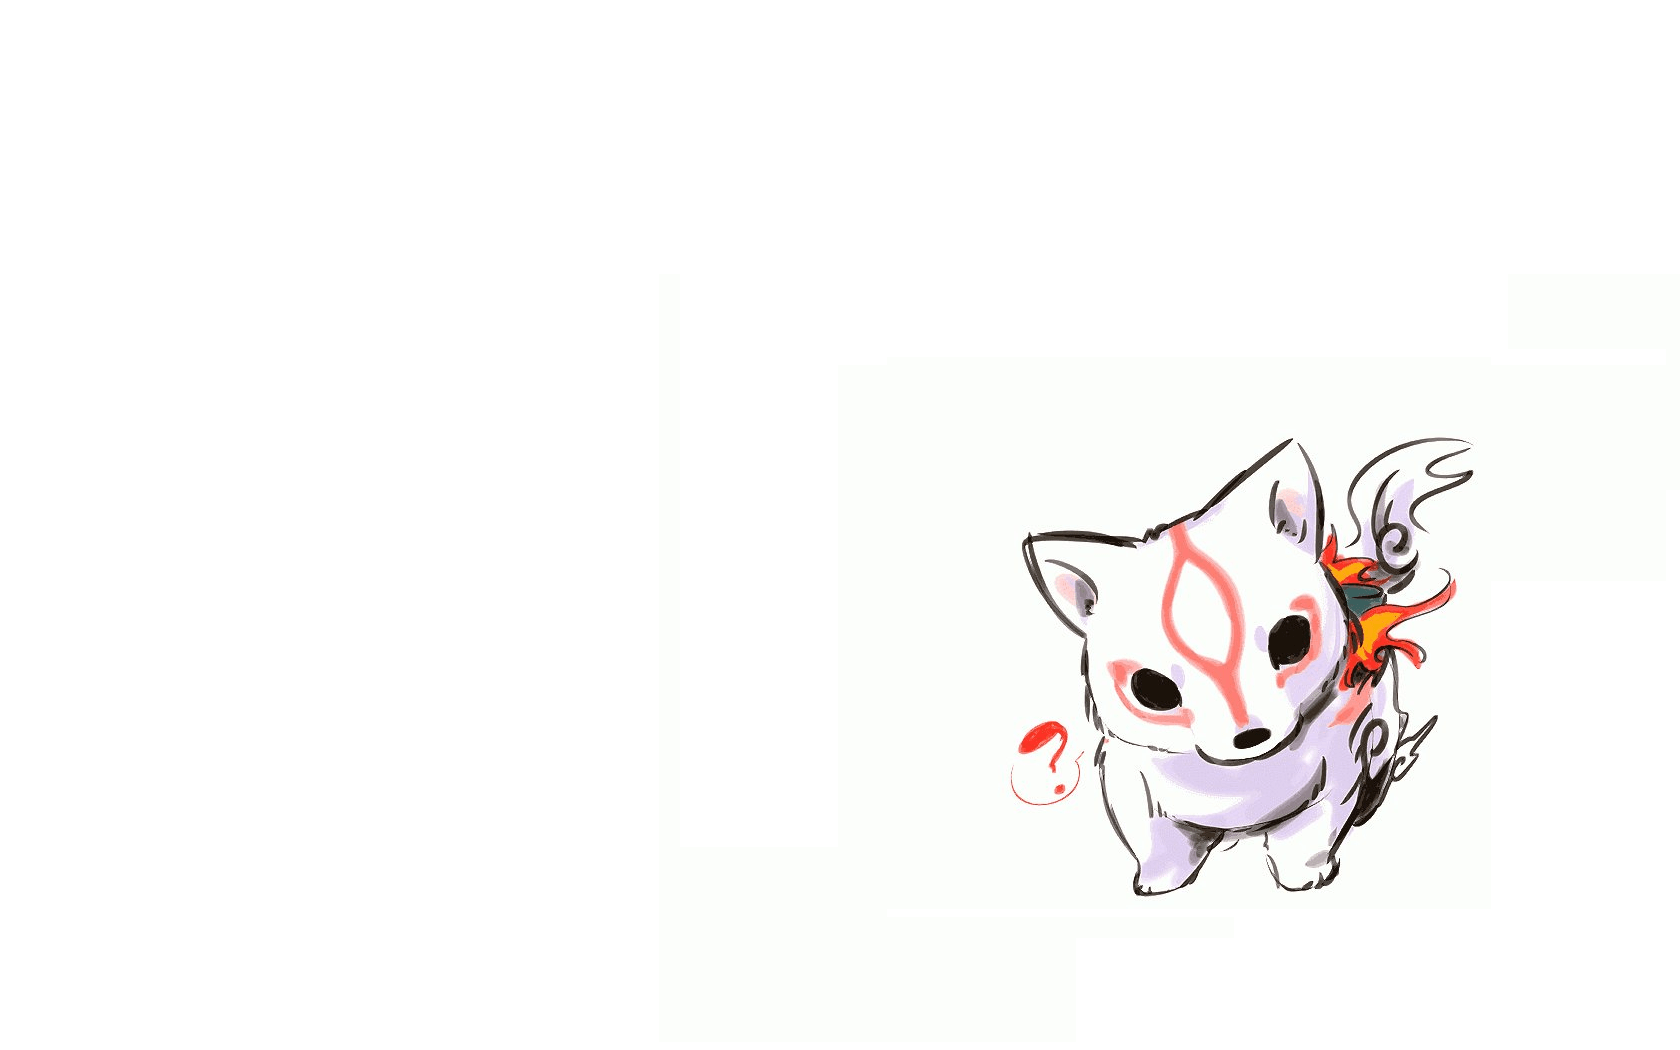 1680x1050 Okami Wallpapers Group with 51 items